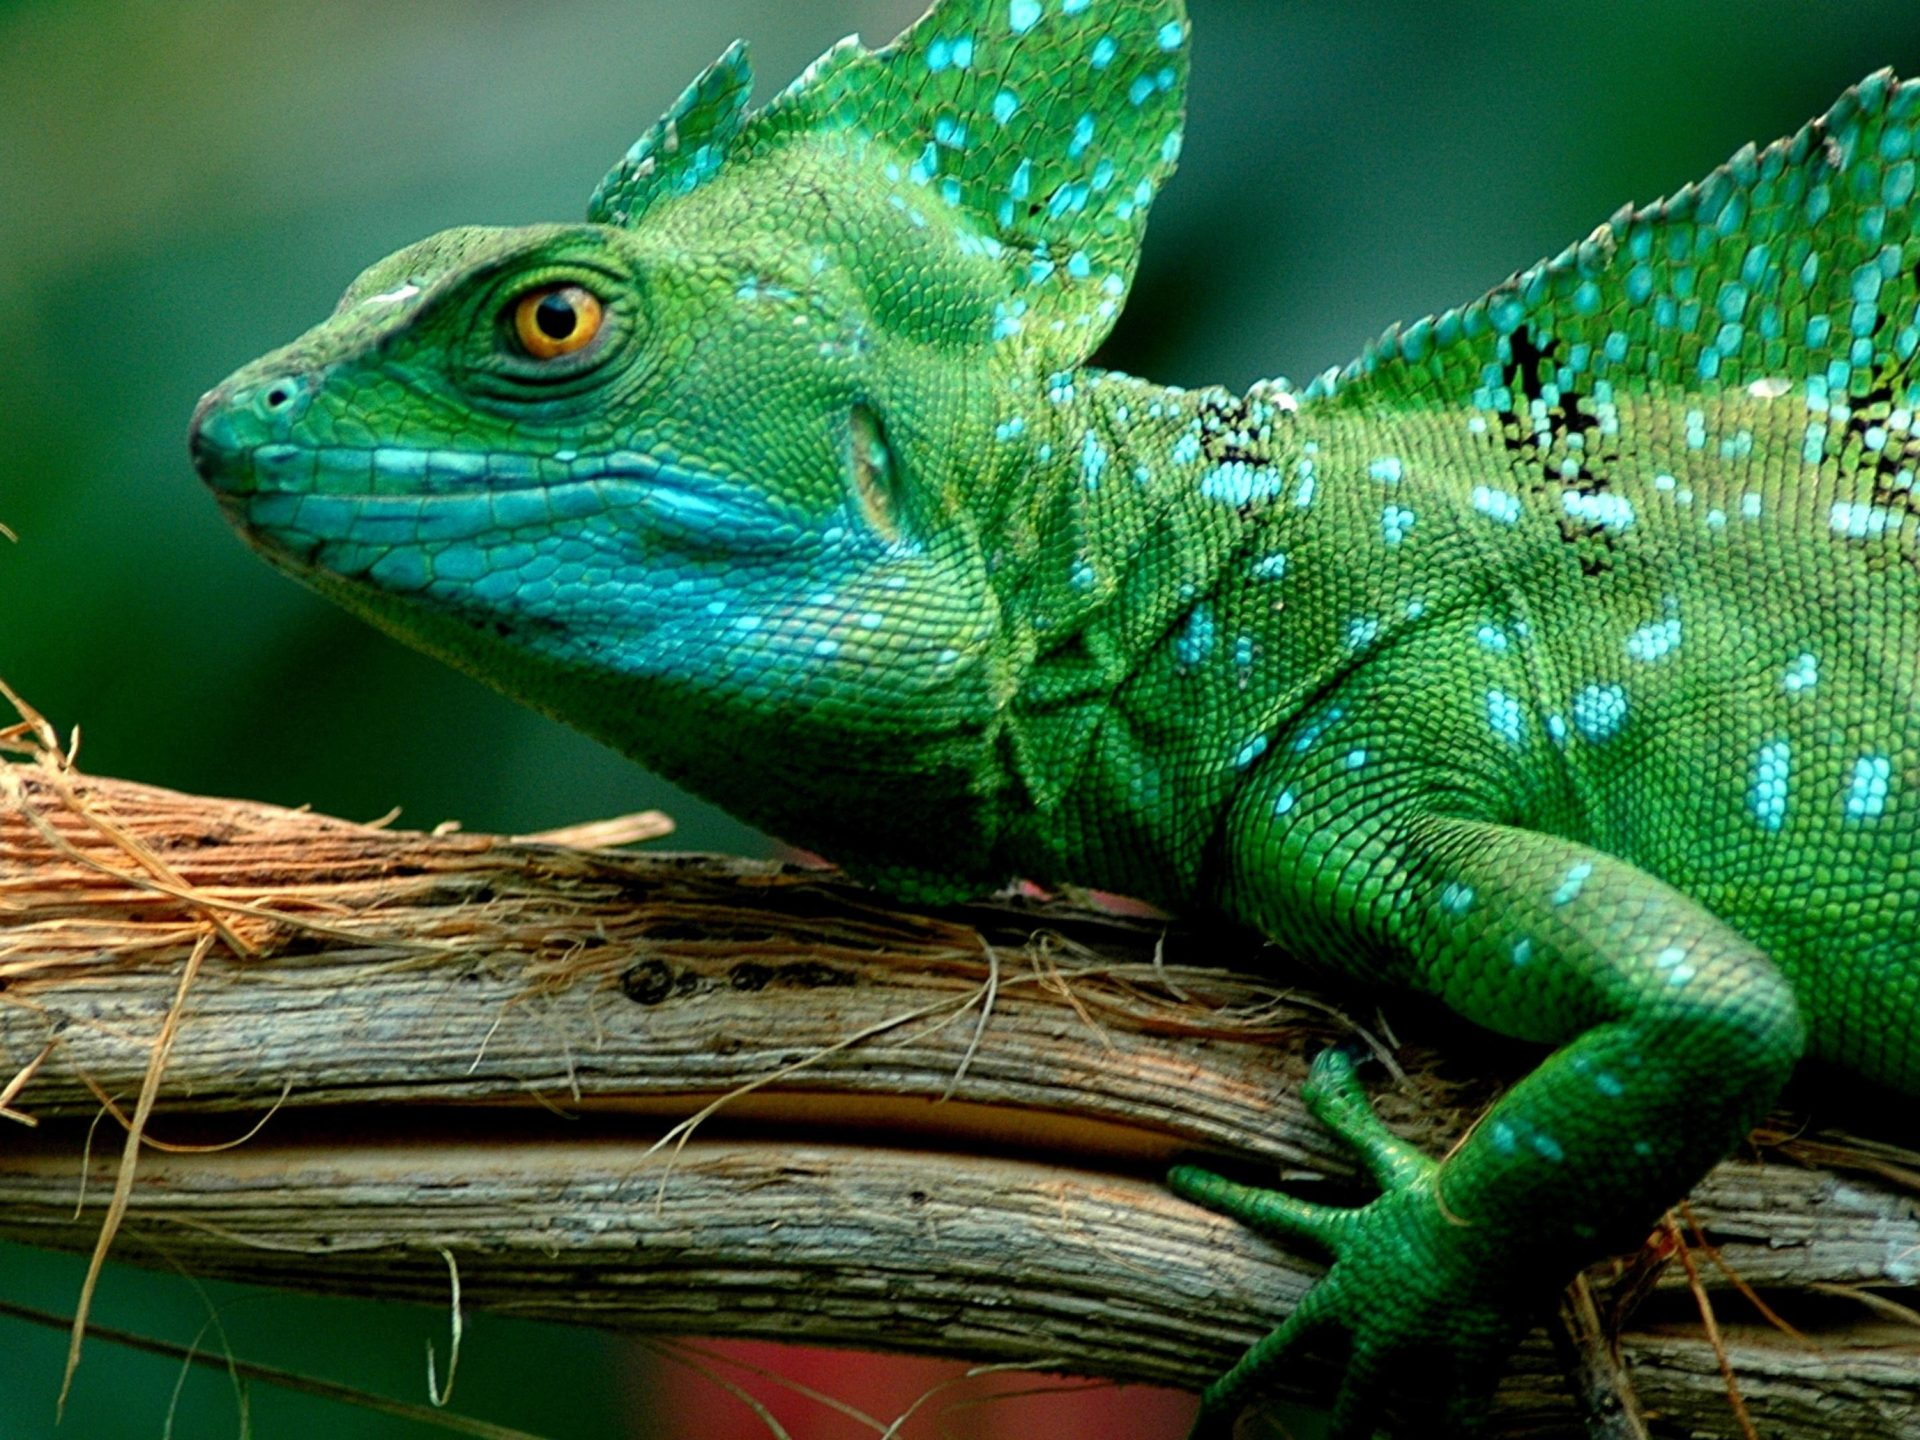 Ocean Wallpaper For Iphone Animals Green Basilisk Lizard Desktop Wallpaper Full